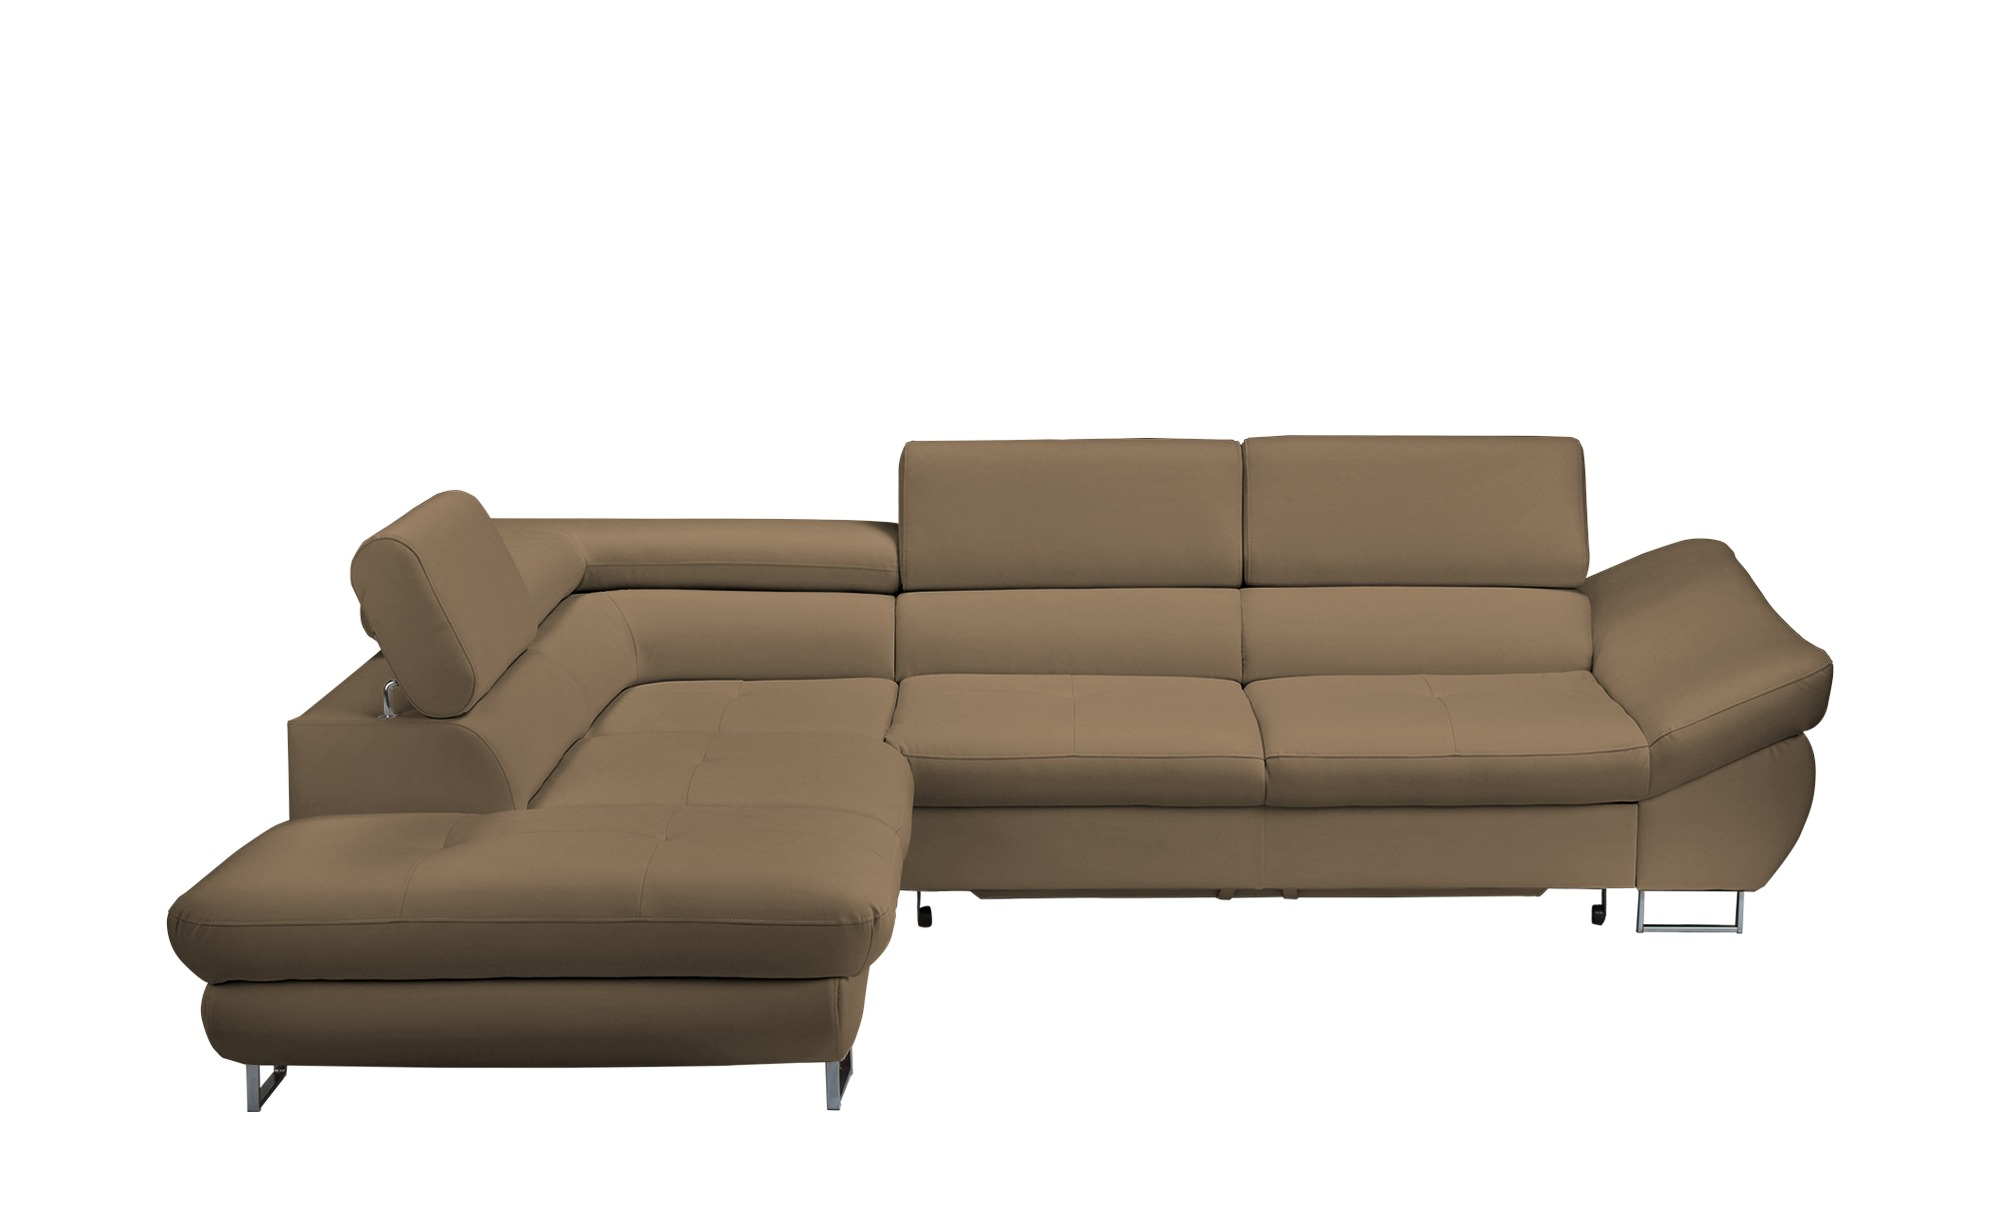 switch ecksofa mit funktion fabio breite h he beige online kaufen bei woonio. Black Bedroom Furniture Sets. Home Design Ideas